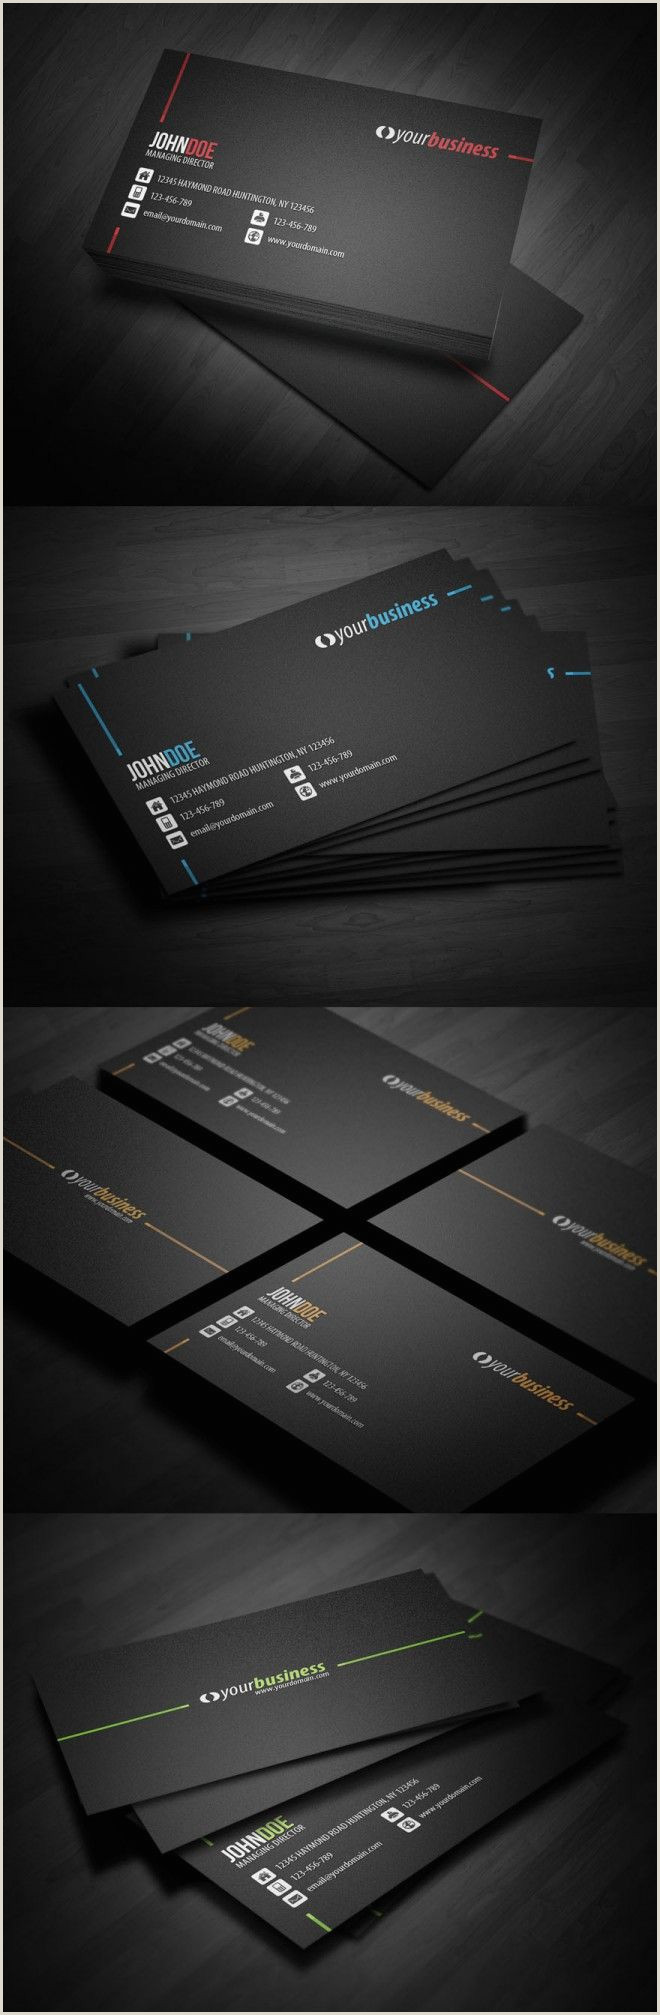 Best Business Cards Compay 50 Creative Corporate Business Card Design Examples Design